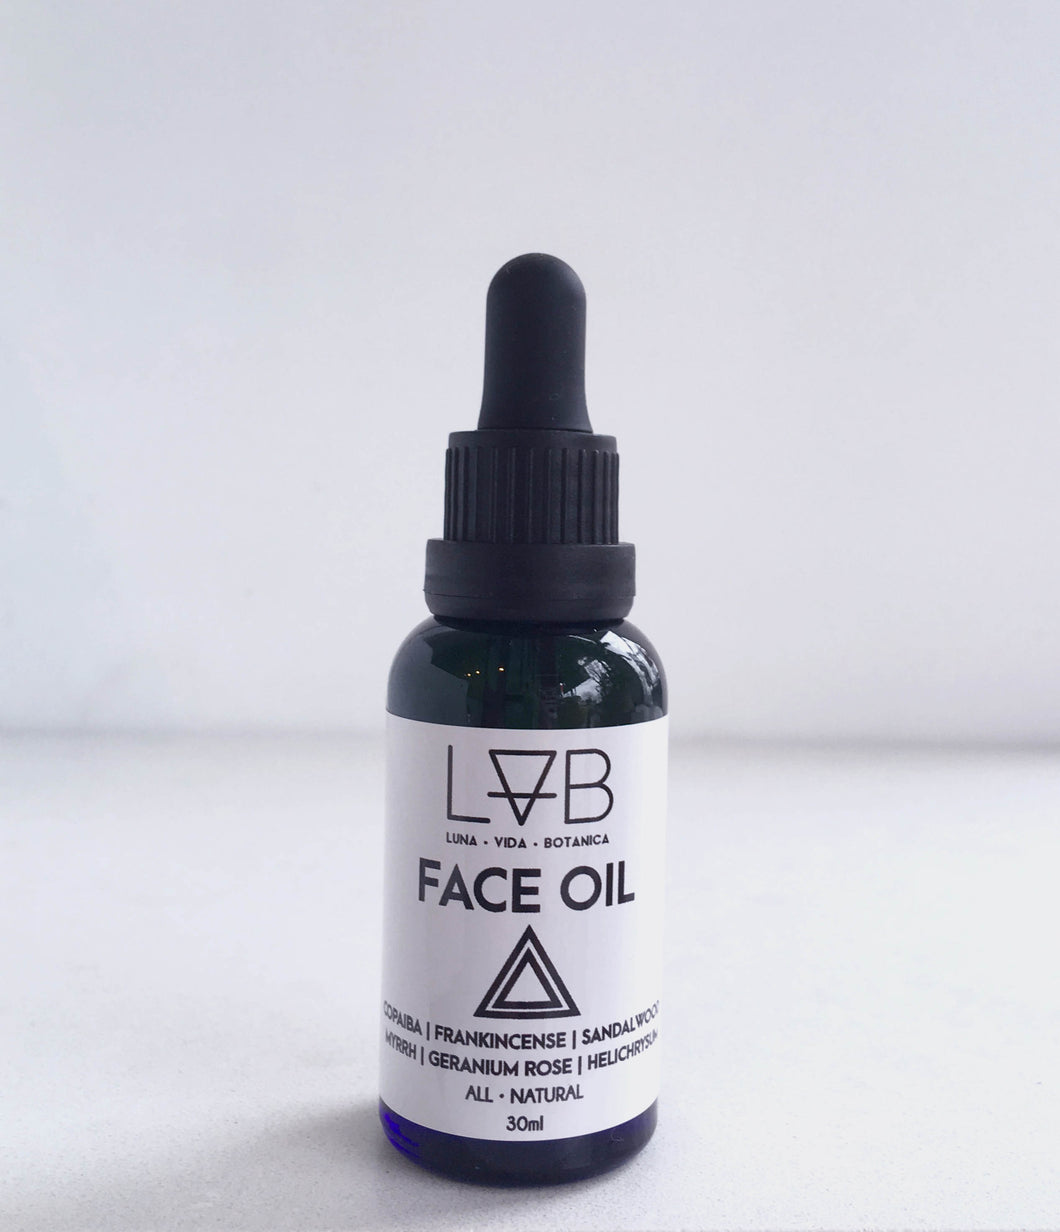 Face Oil by LVB